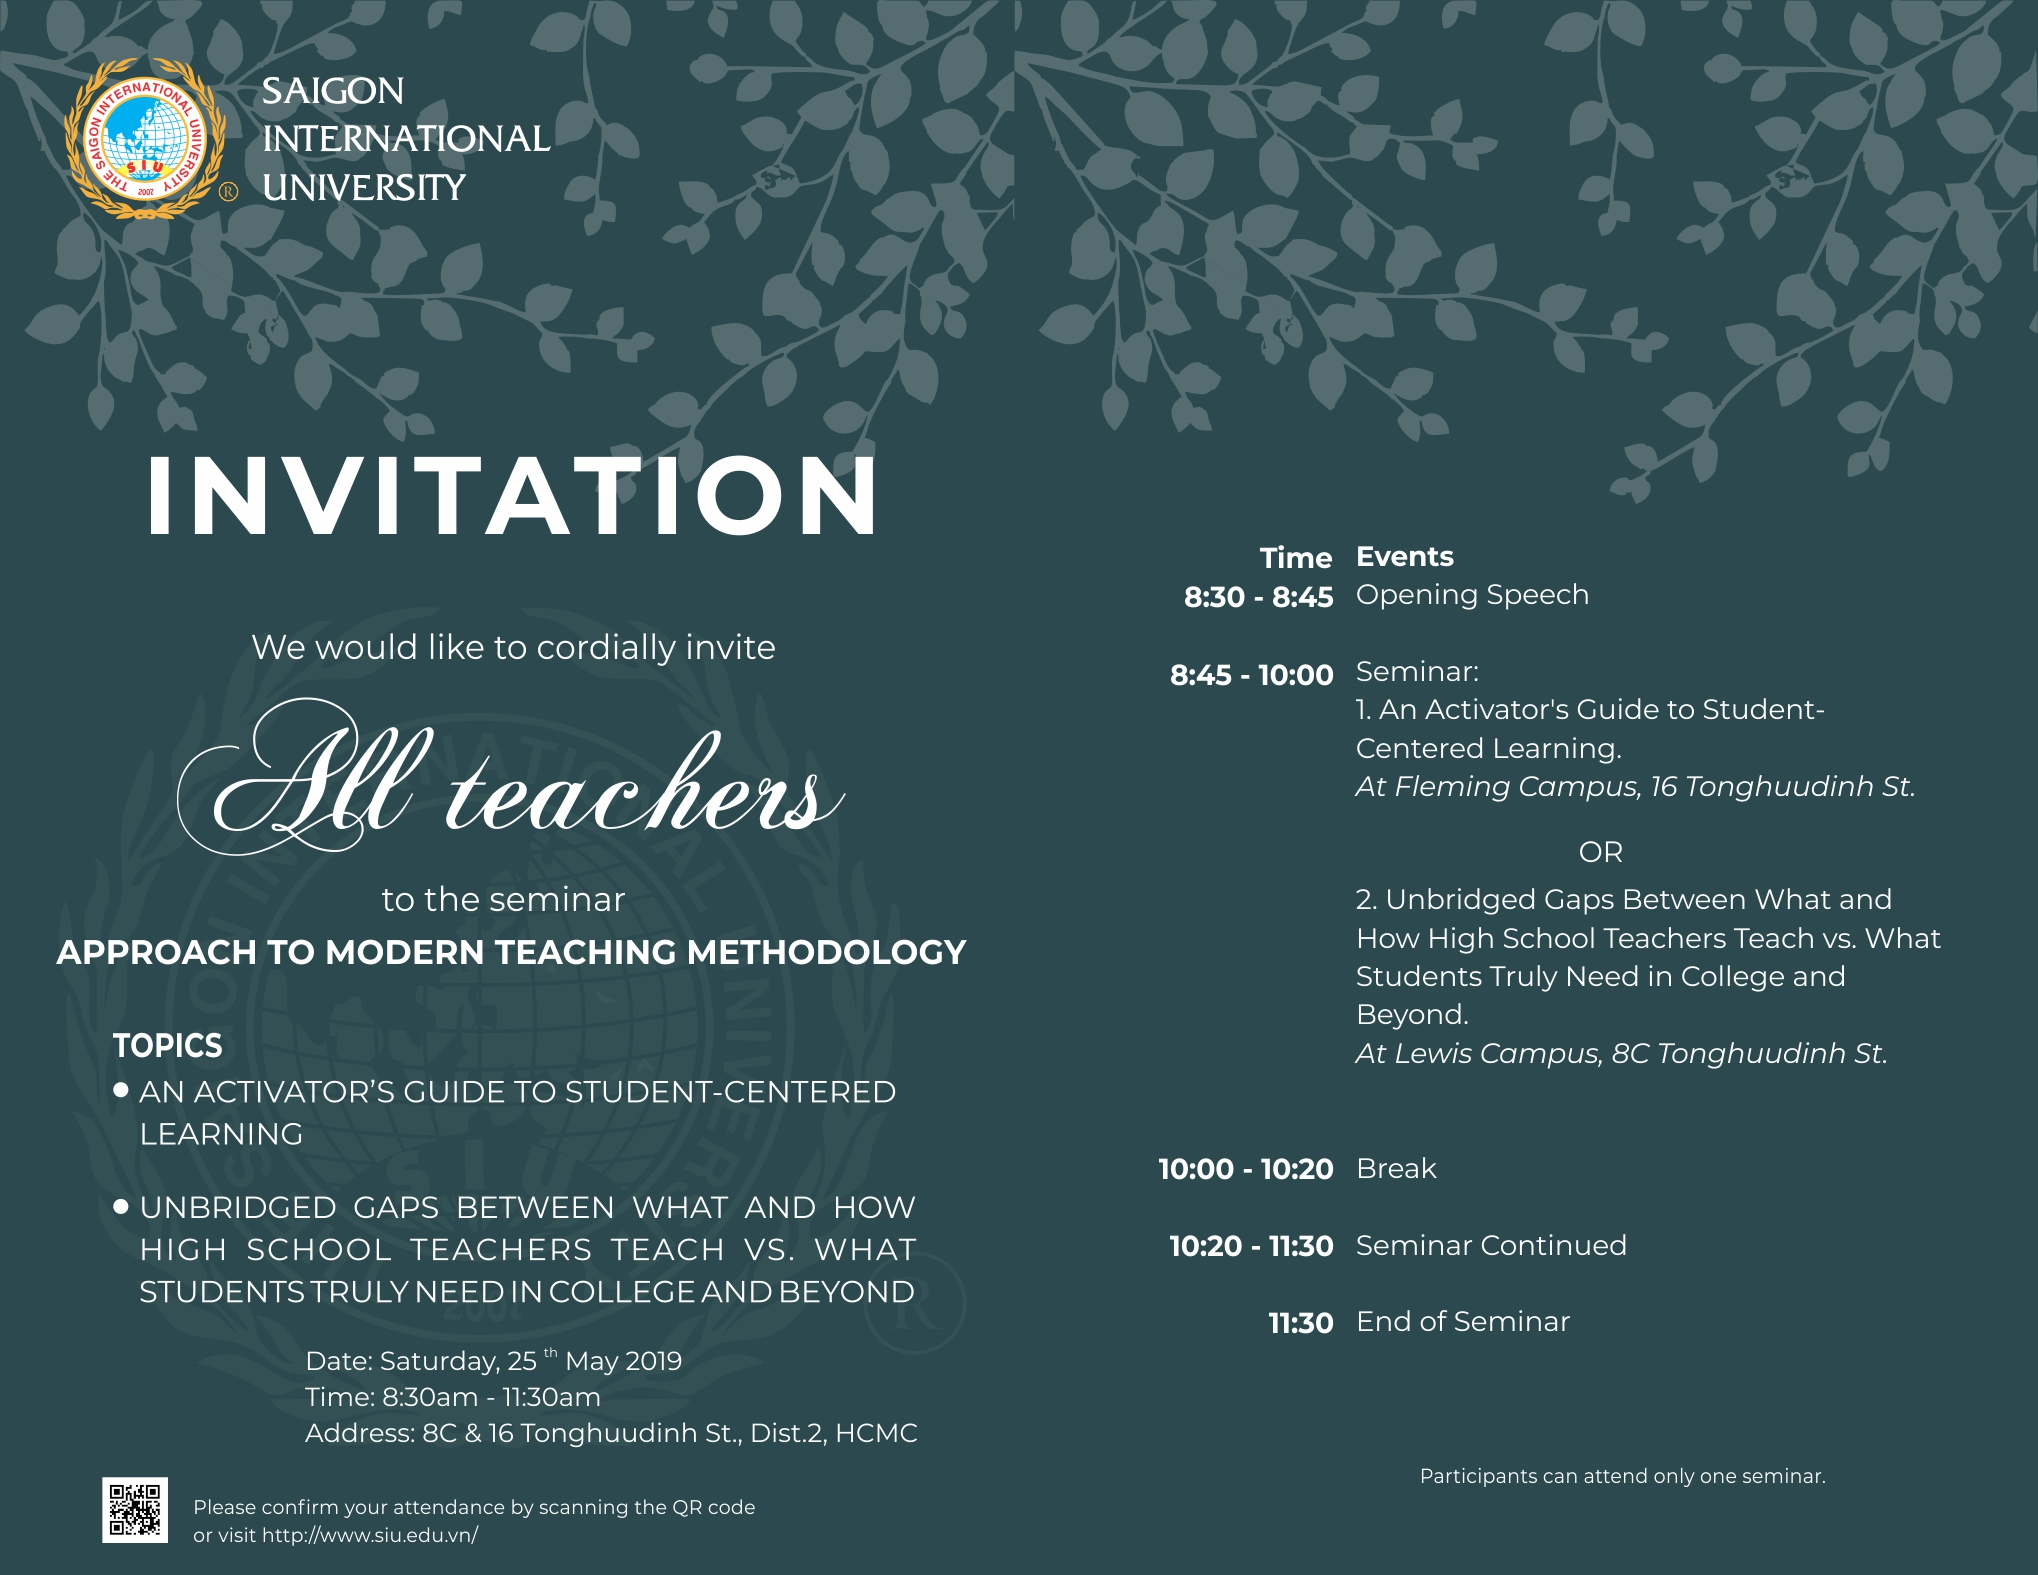 SEMINAR ON APPROACH TO MODERN TEACHING METHODOLOGY